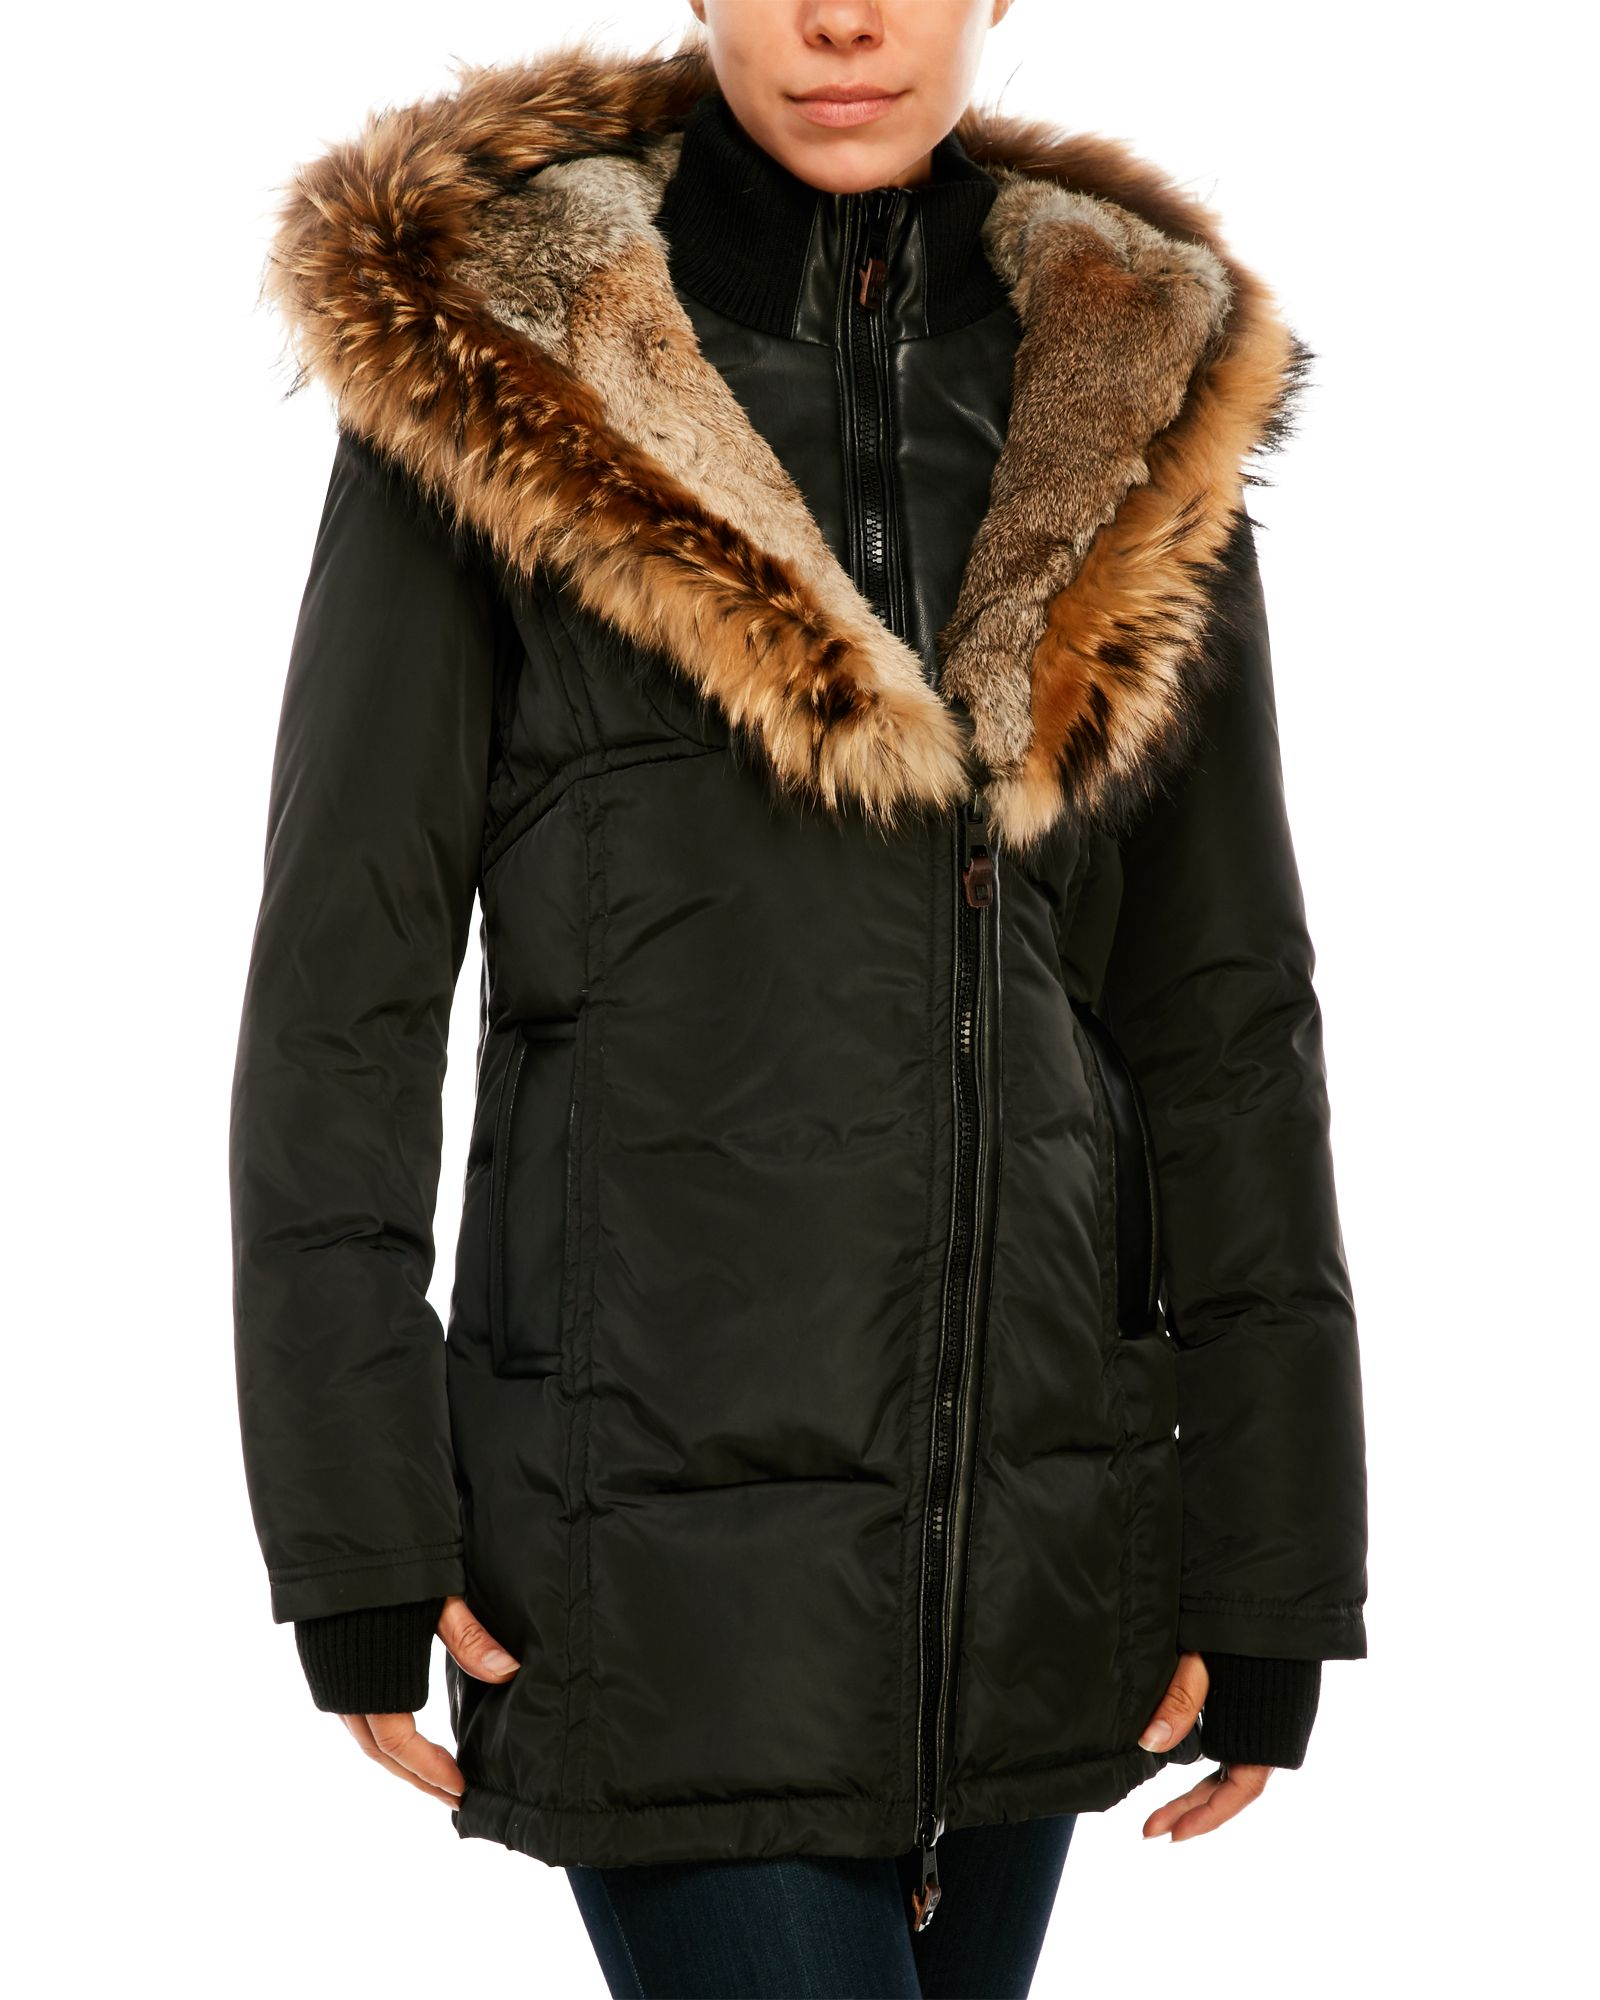 Contrasting Down Puffer Jacket With Real Fur Trim Jackets Puffer Jackets Fur Trim [ 2000 x 1600 Pixel ]